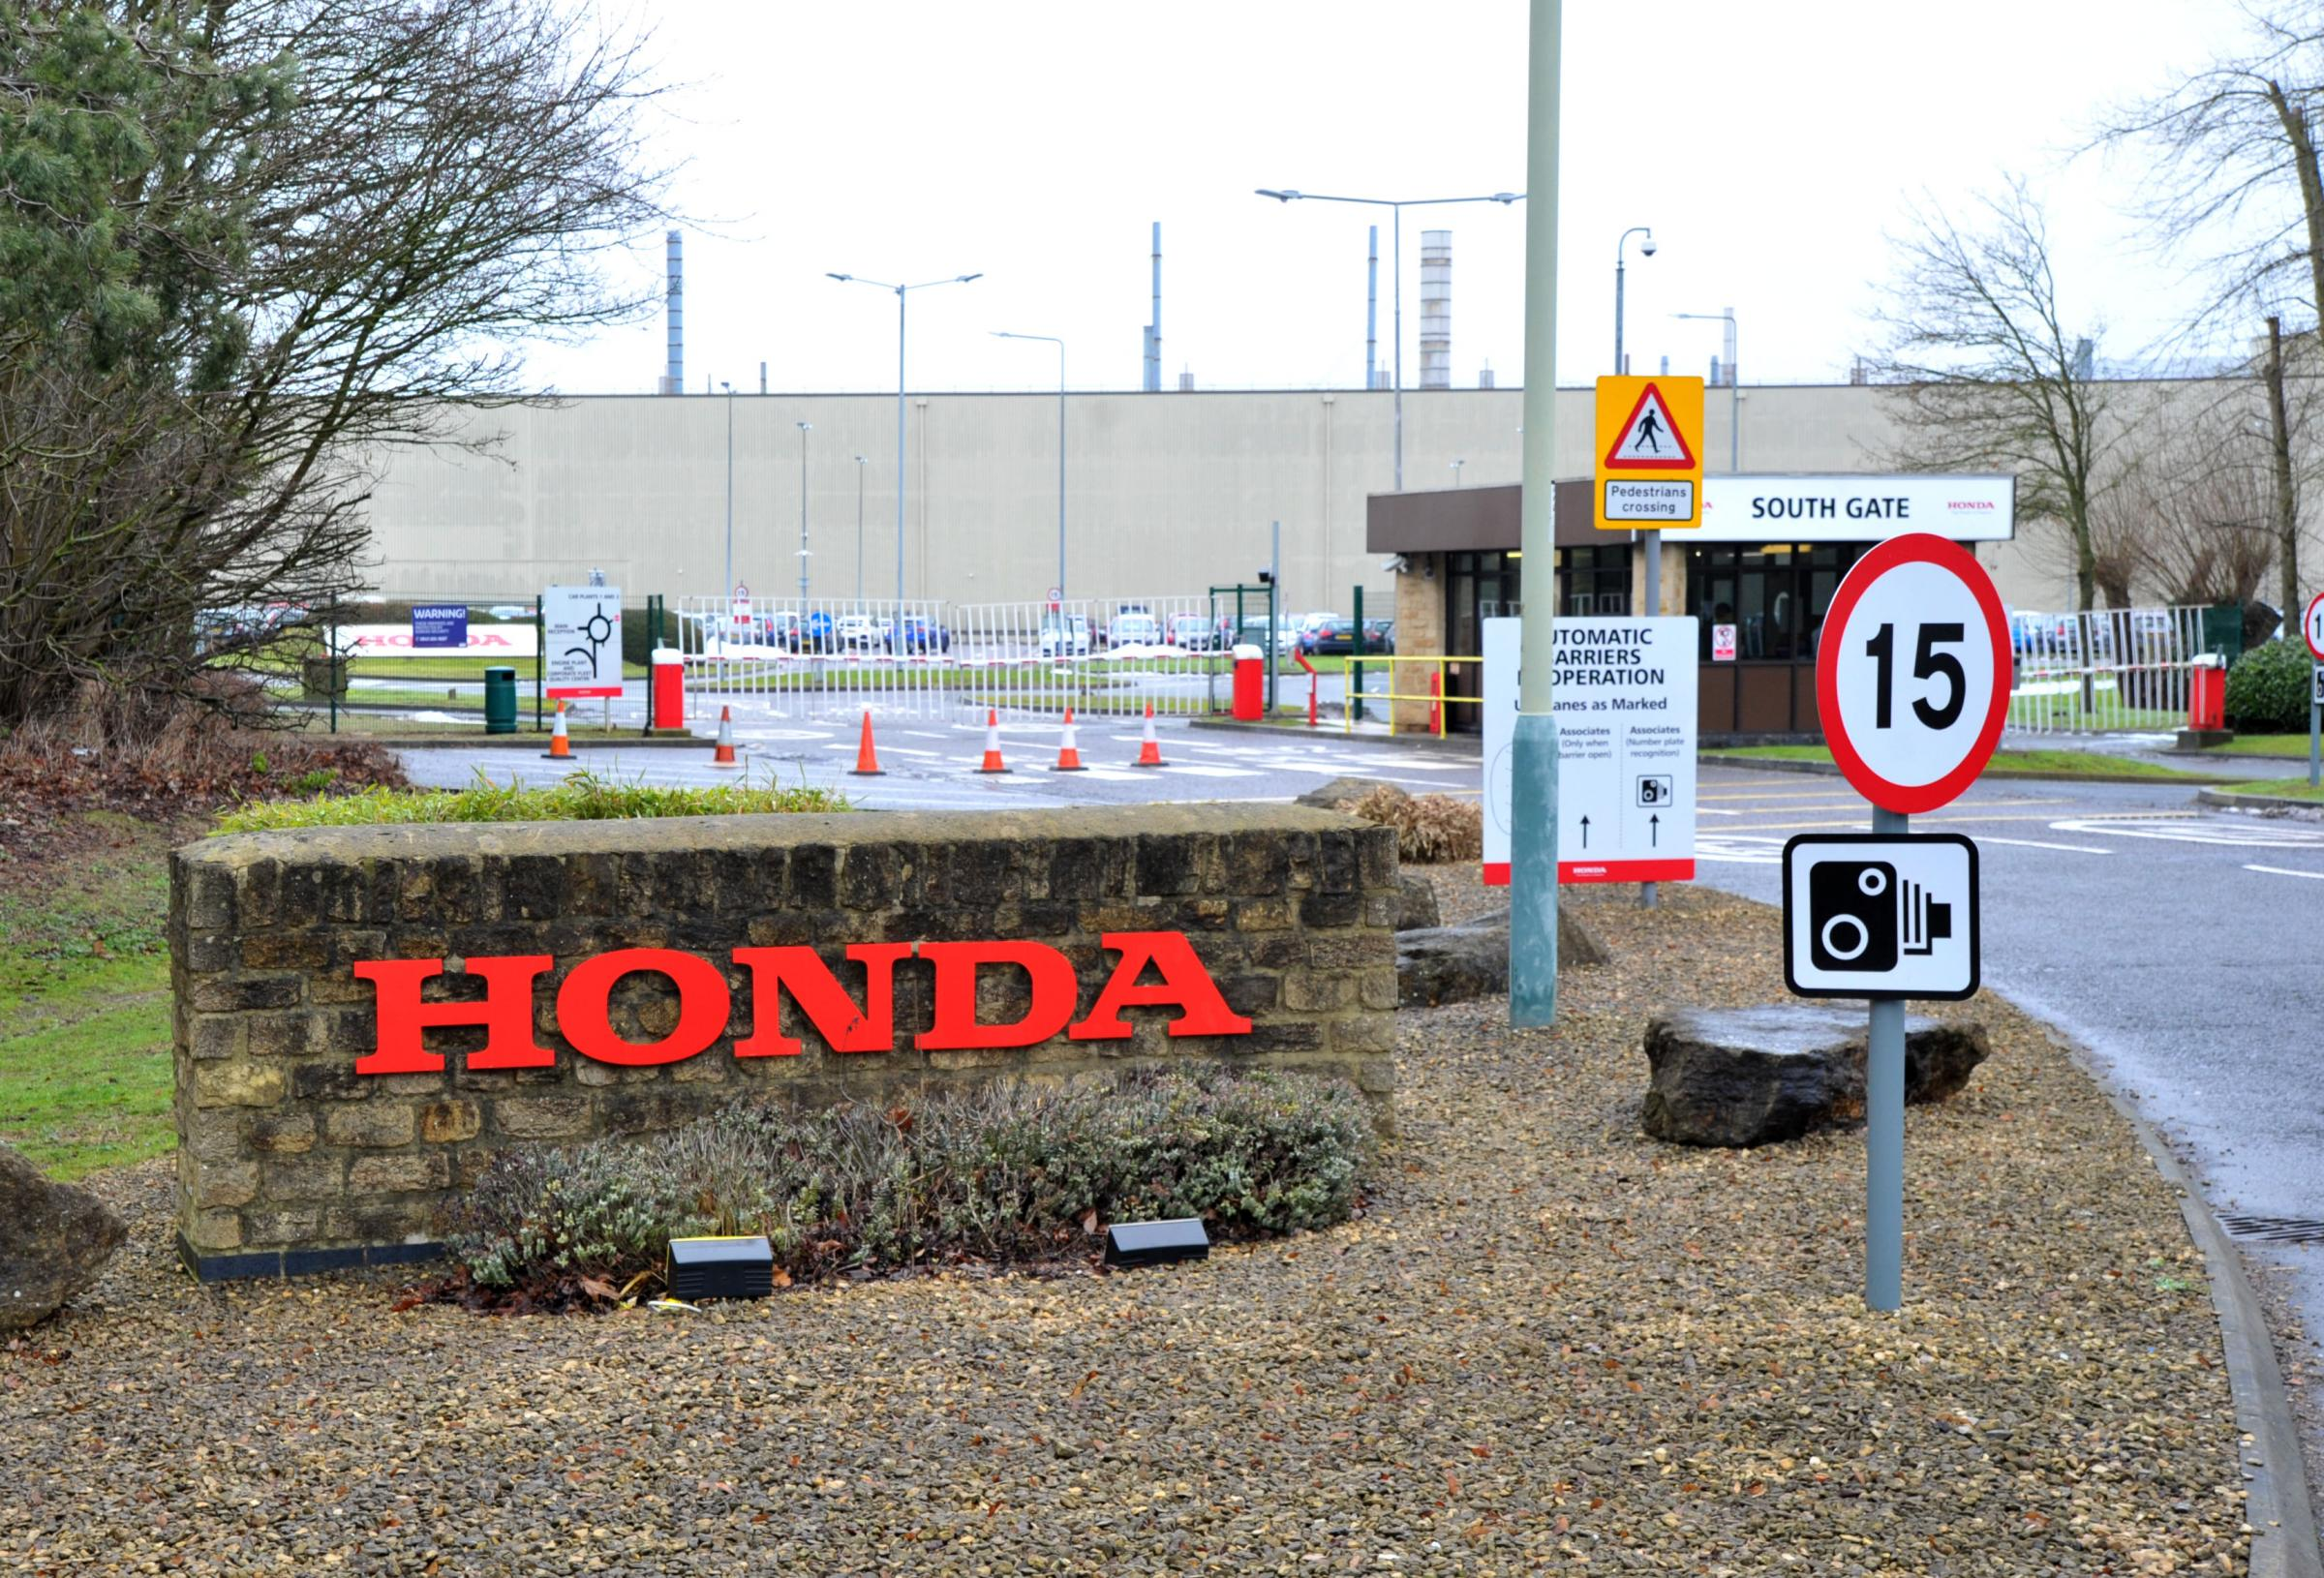 Honda expected to close Swindon factory in 2022 - reports